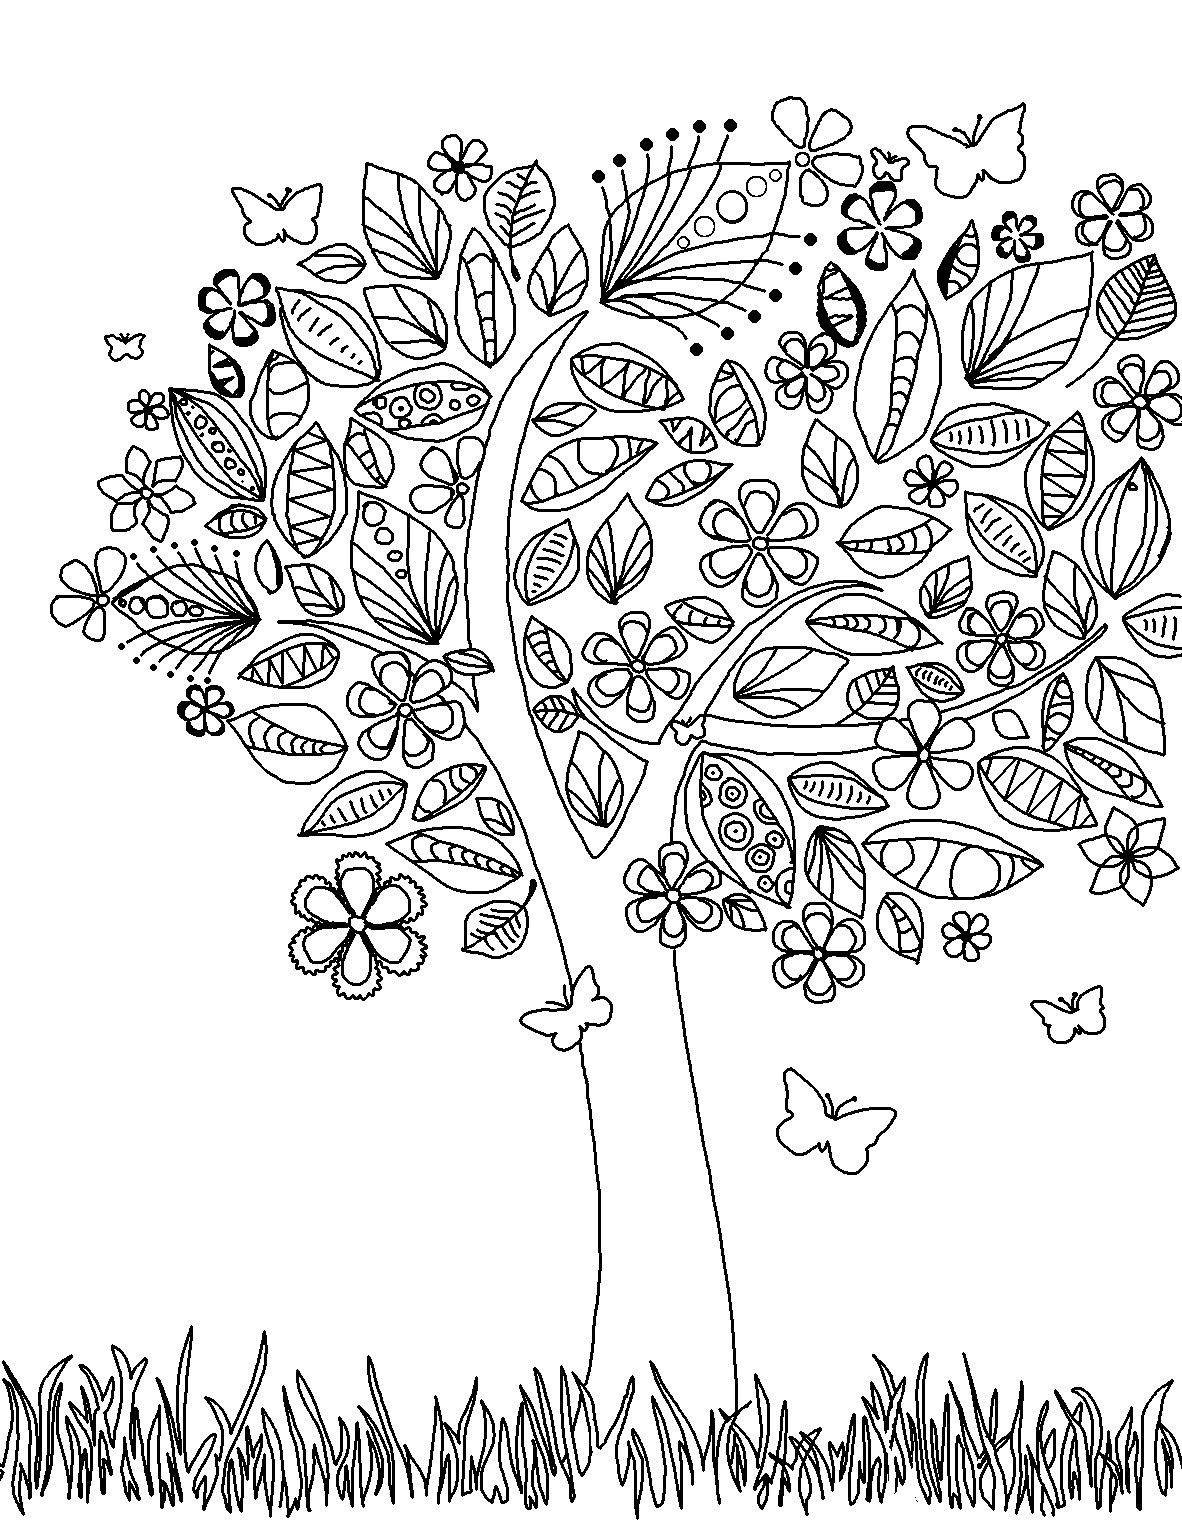 Coloring Page World - Tree coloring page with flowers and ...